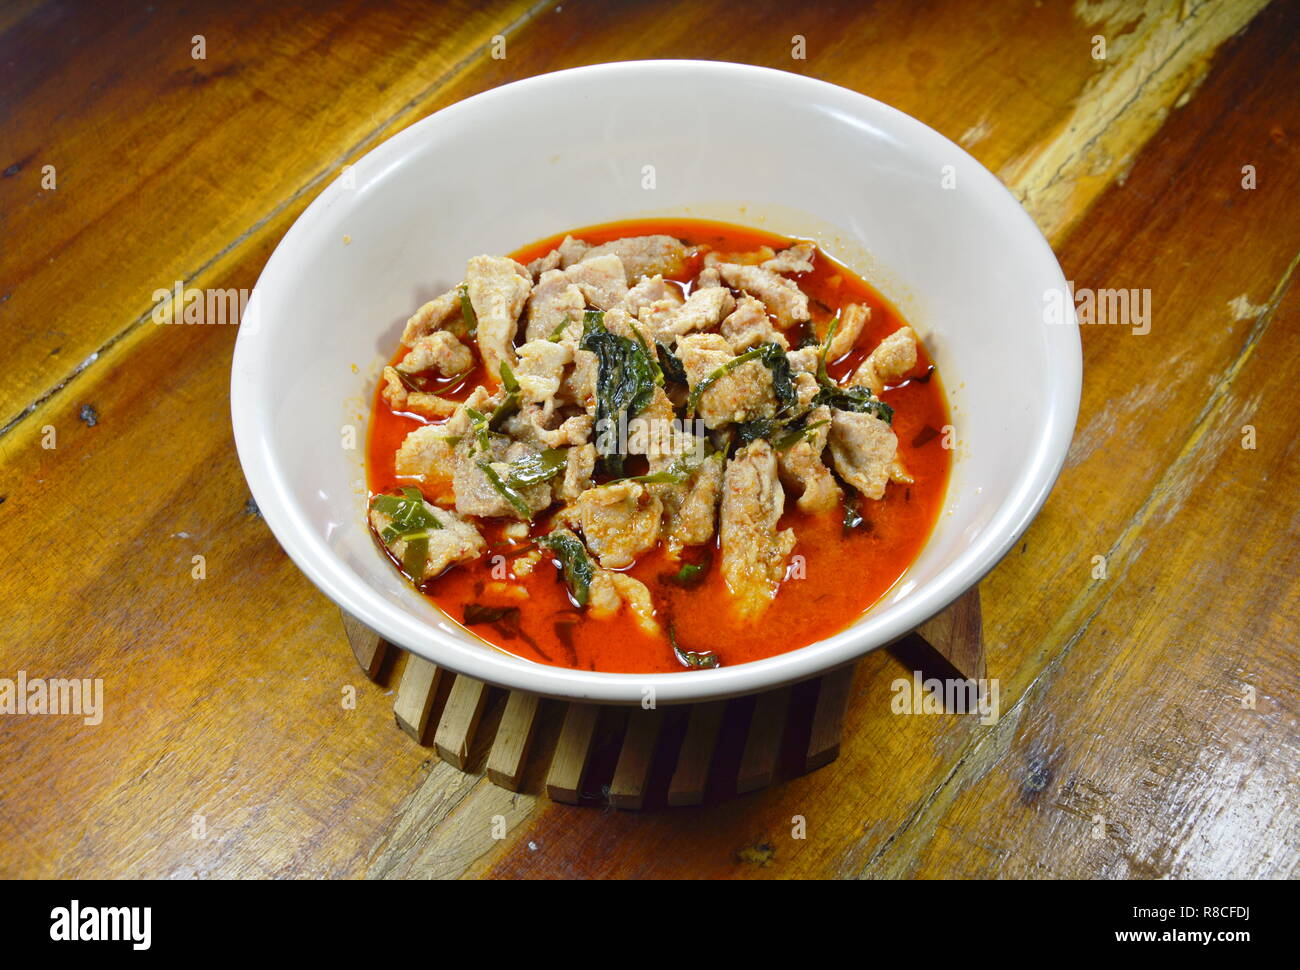 savory curry pork with coconut milk in bowl - Stock Image